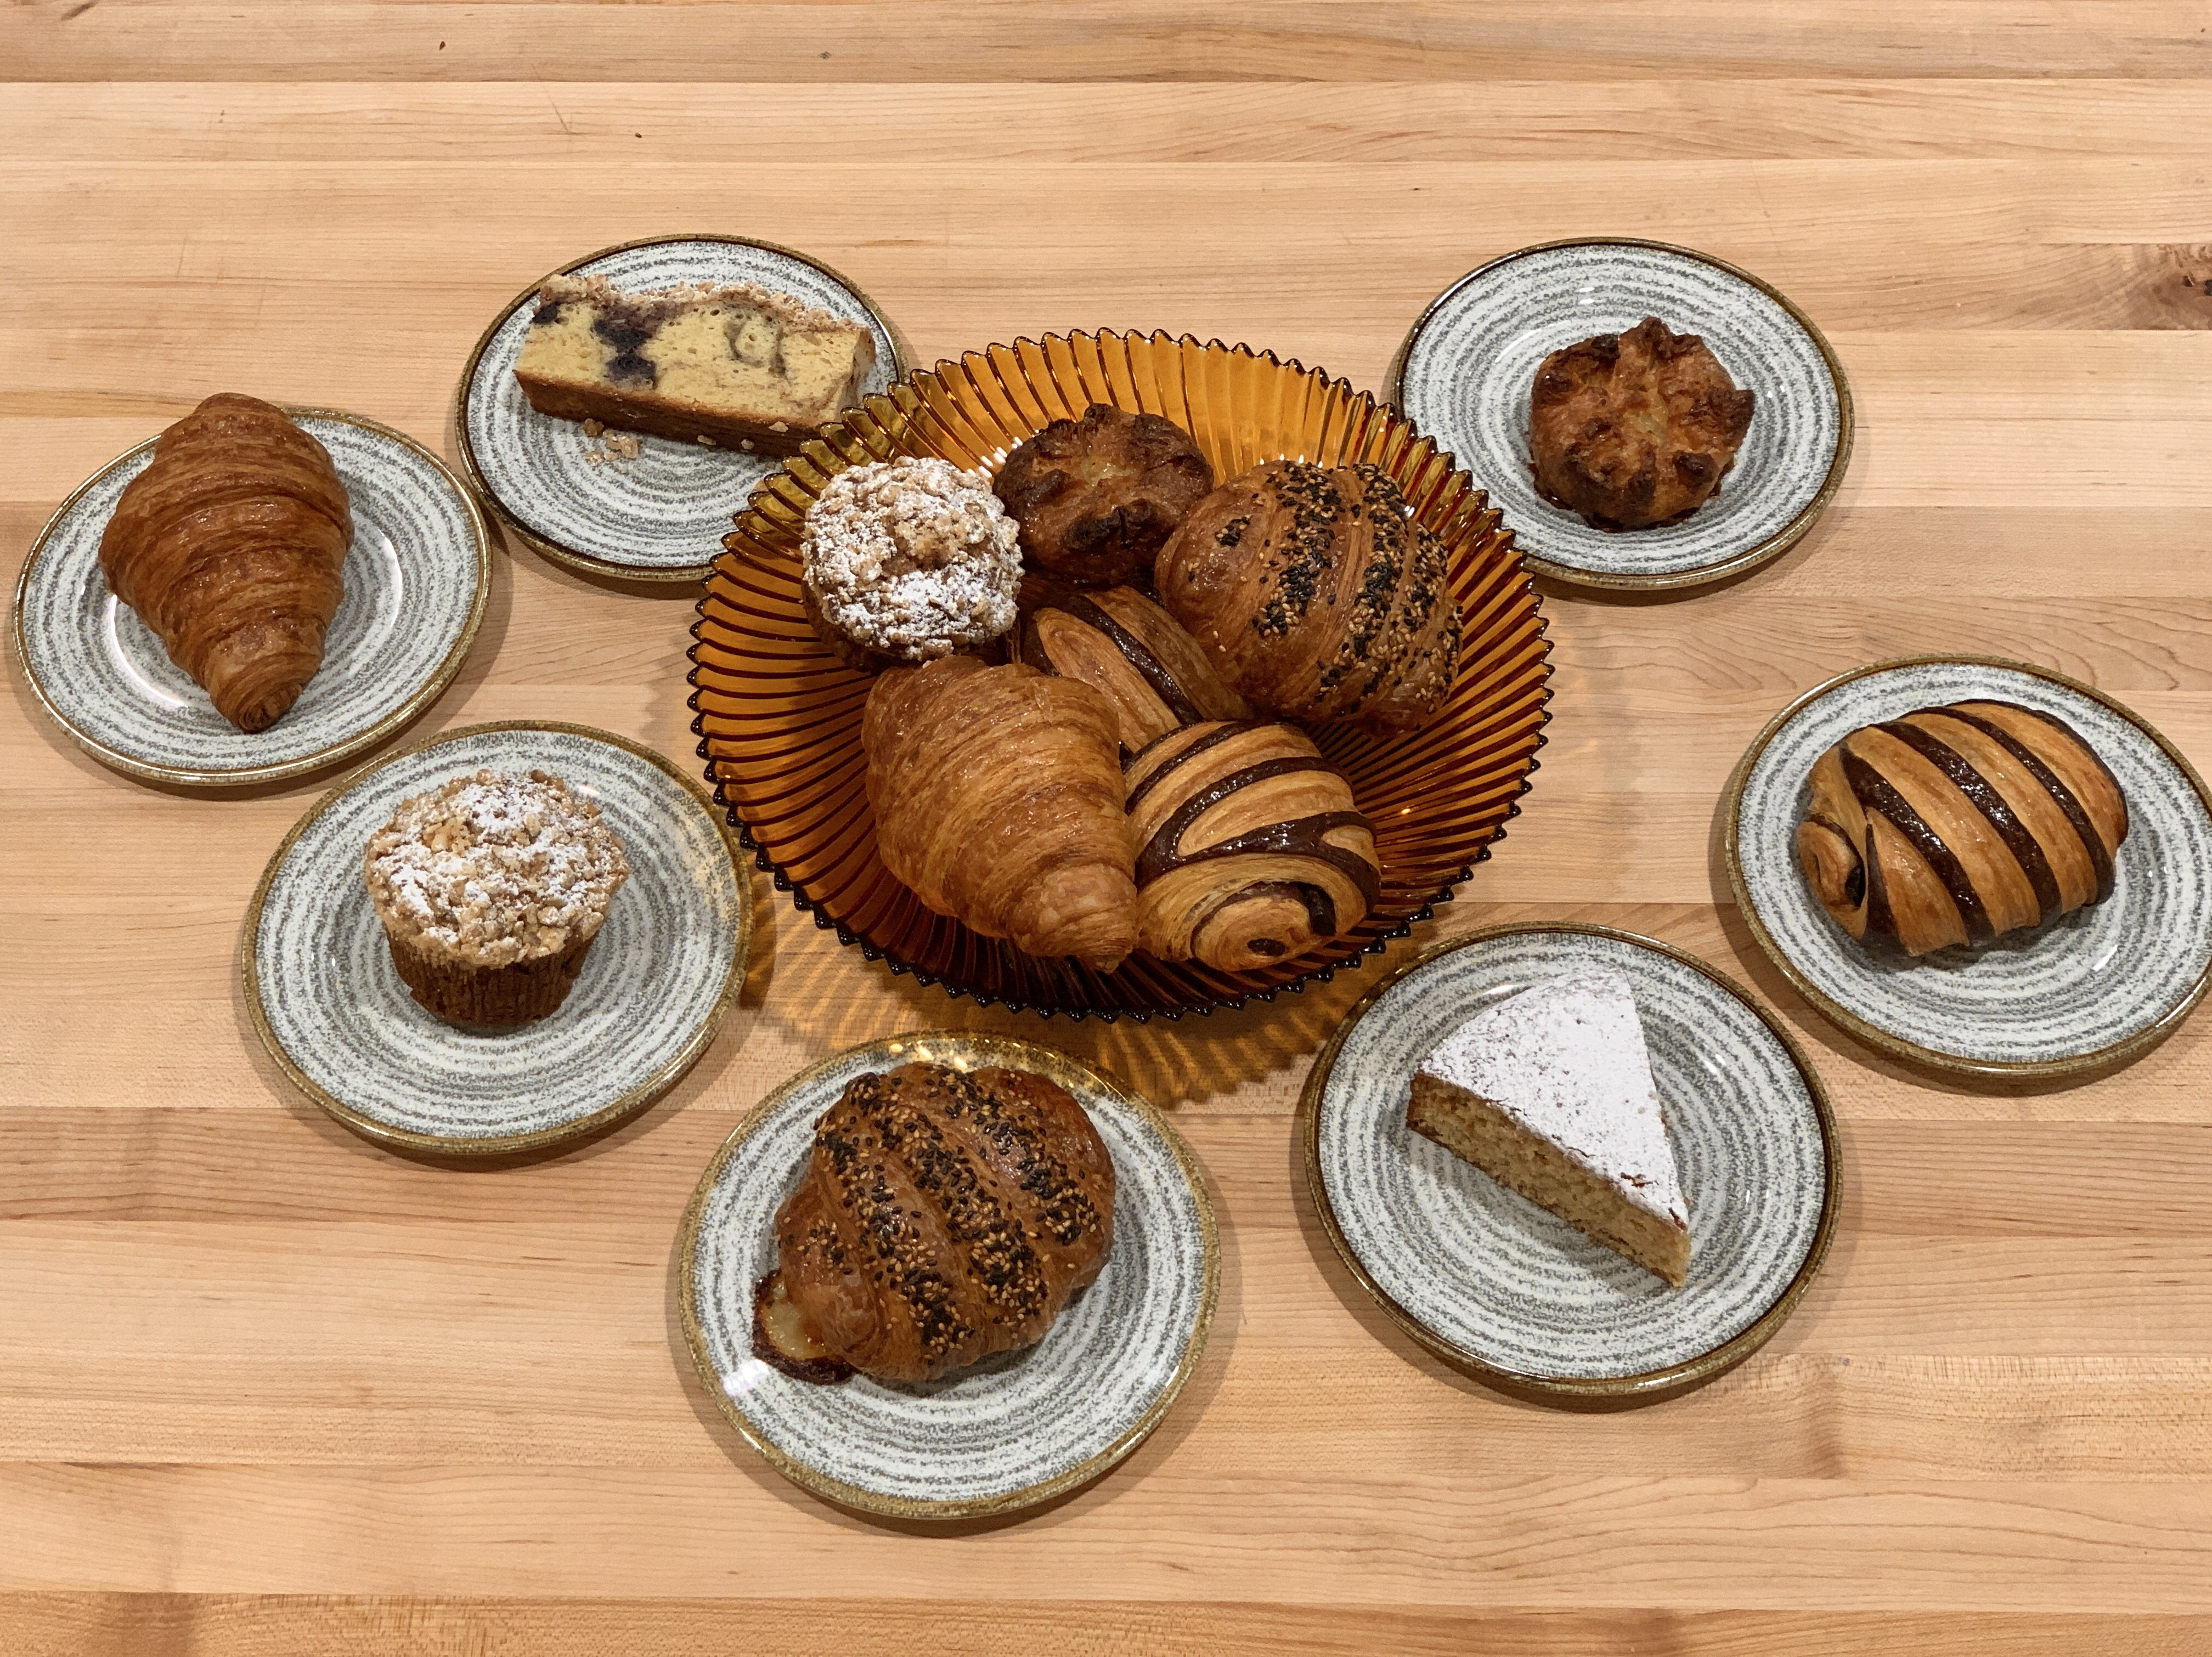 A wooden table filled with plates of baked goods